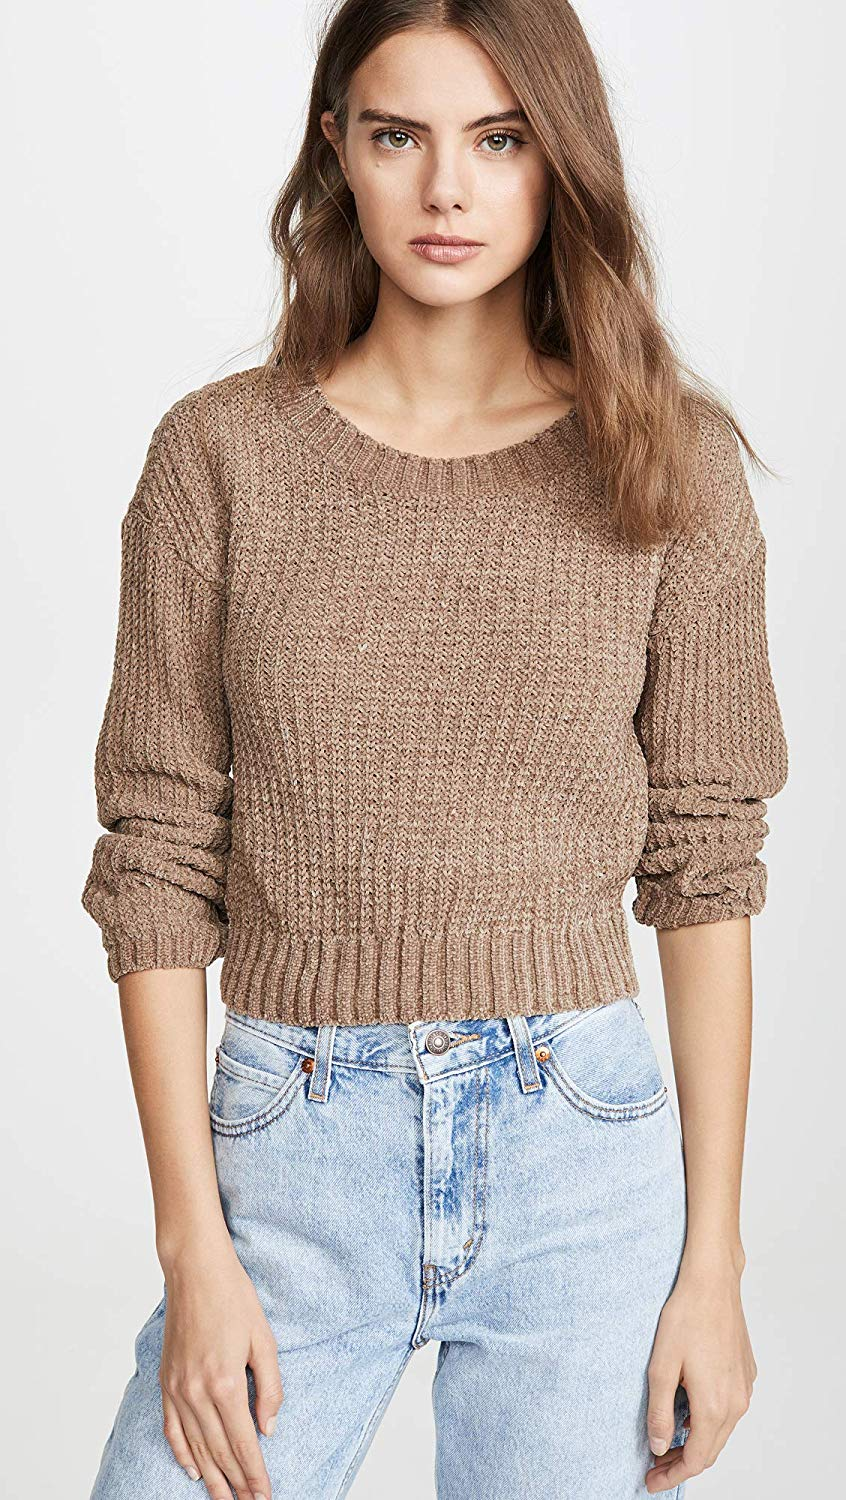 [BJ306638] Chenille The Deal Sweater